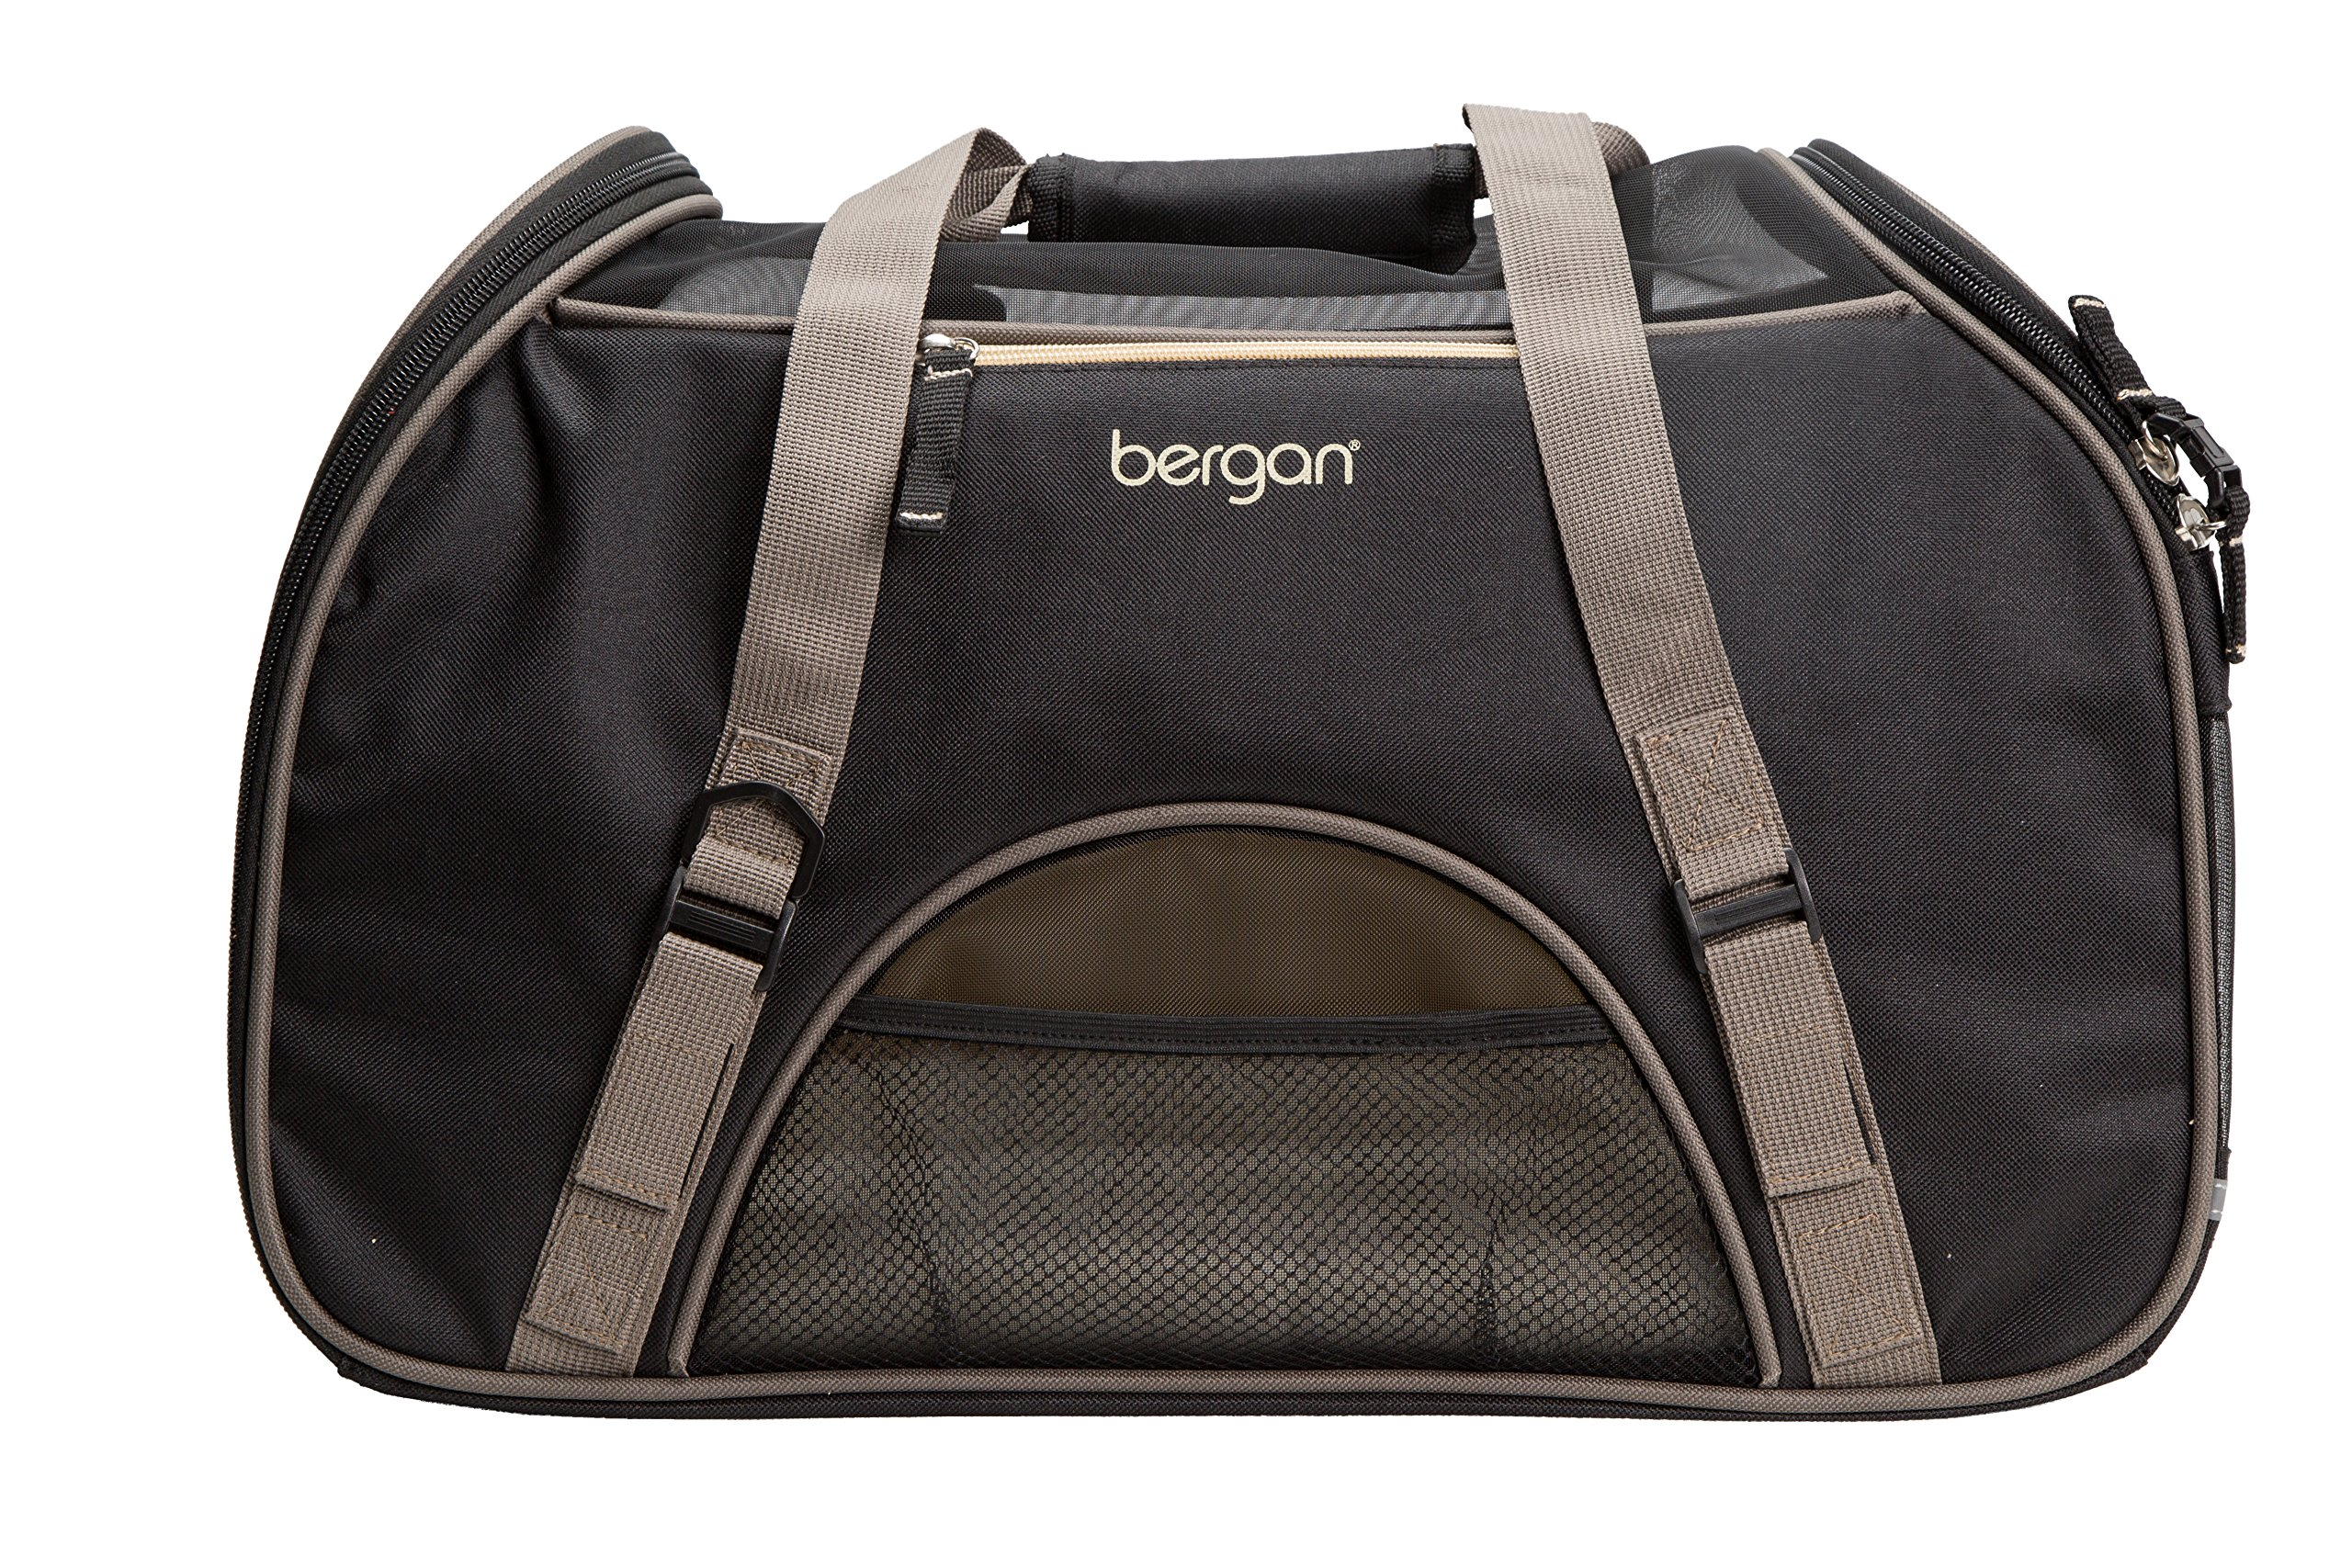 Bergan Comfort Carrier for Pets, Brown and Black, Large 19''L x 10''W x 13''H by Bergan